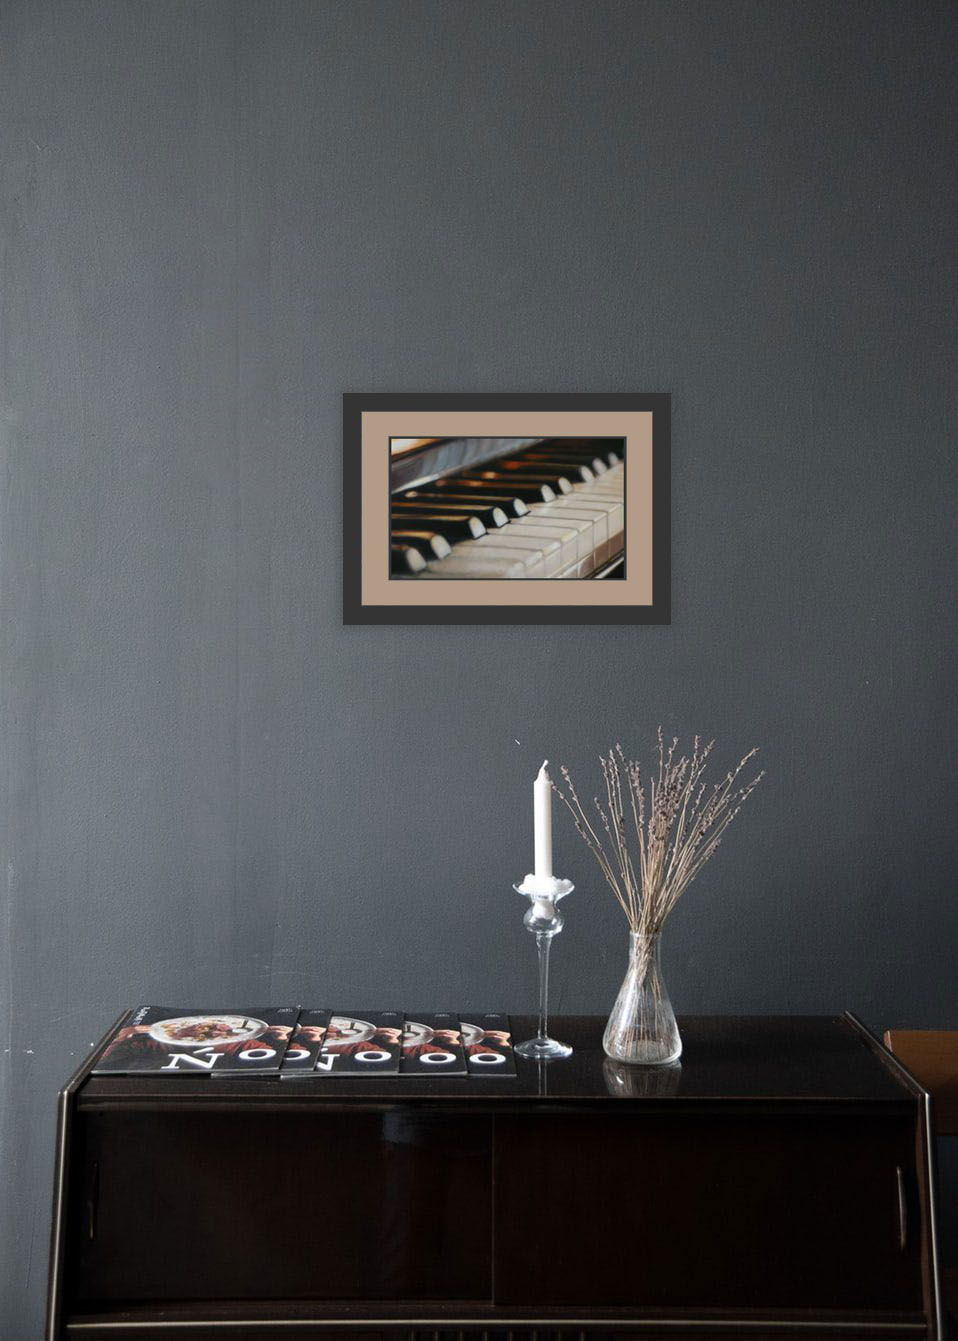 Limited Edition Prints - Piano print in room